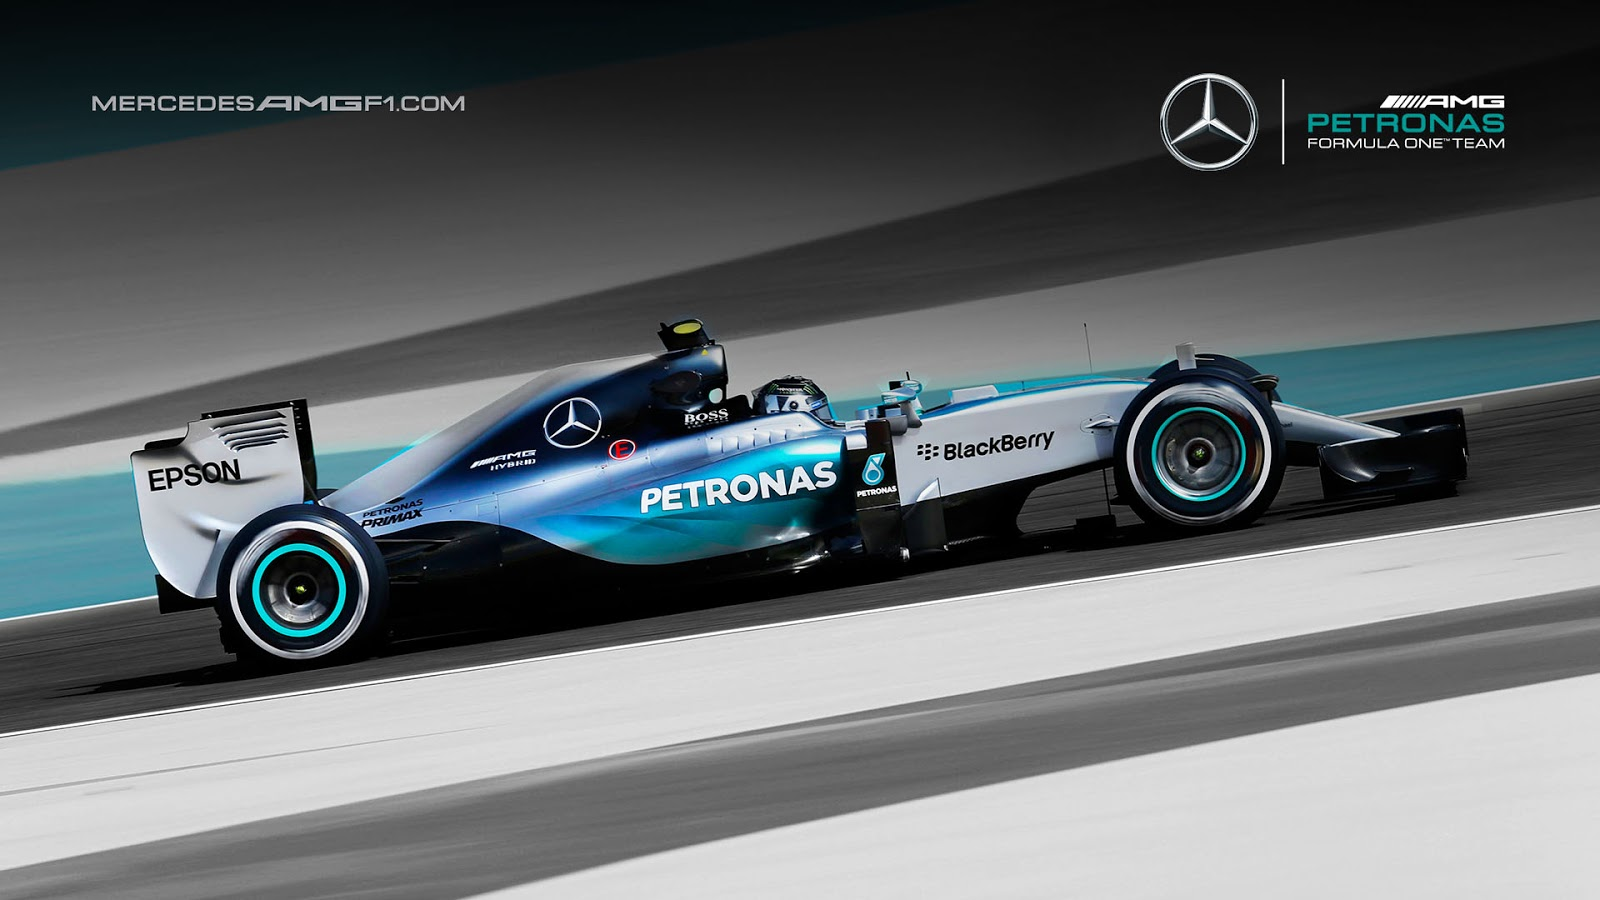 Mercedes Benz Amg Petronas Wallpaper